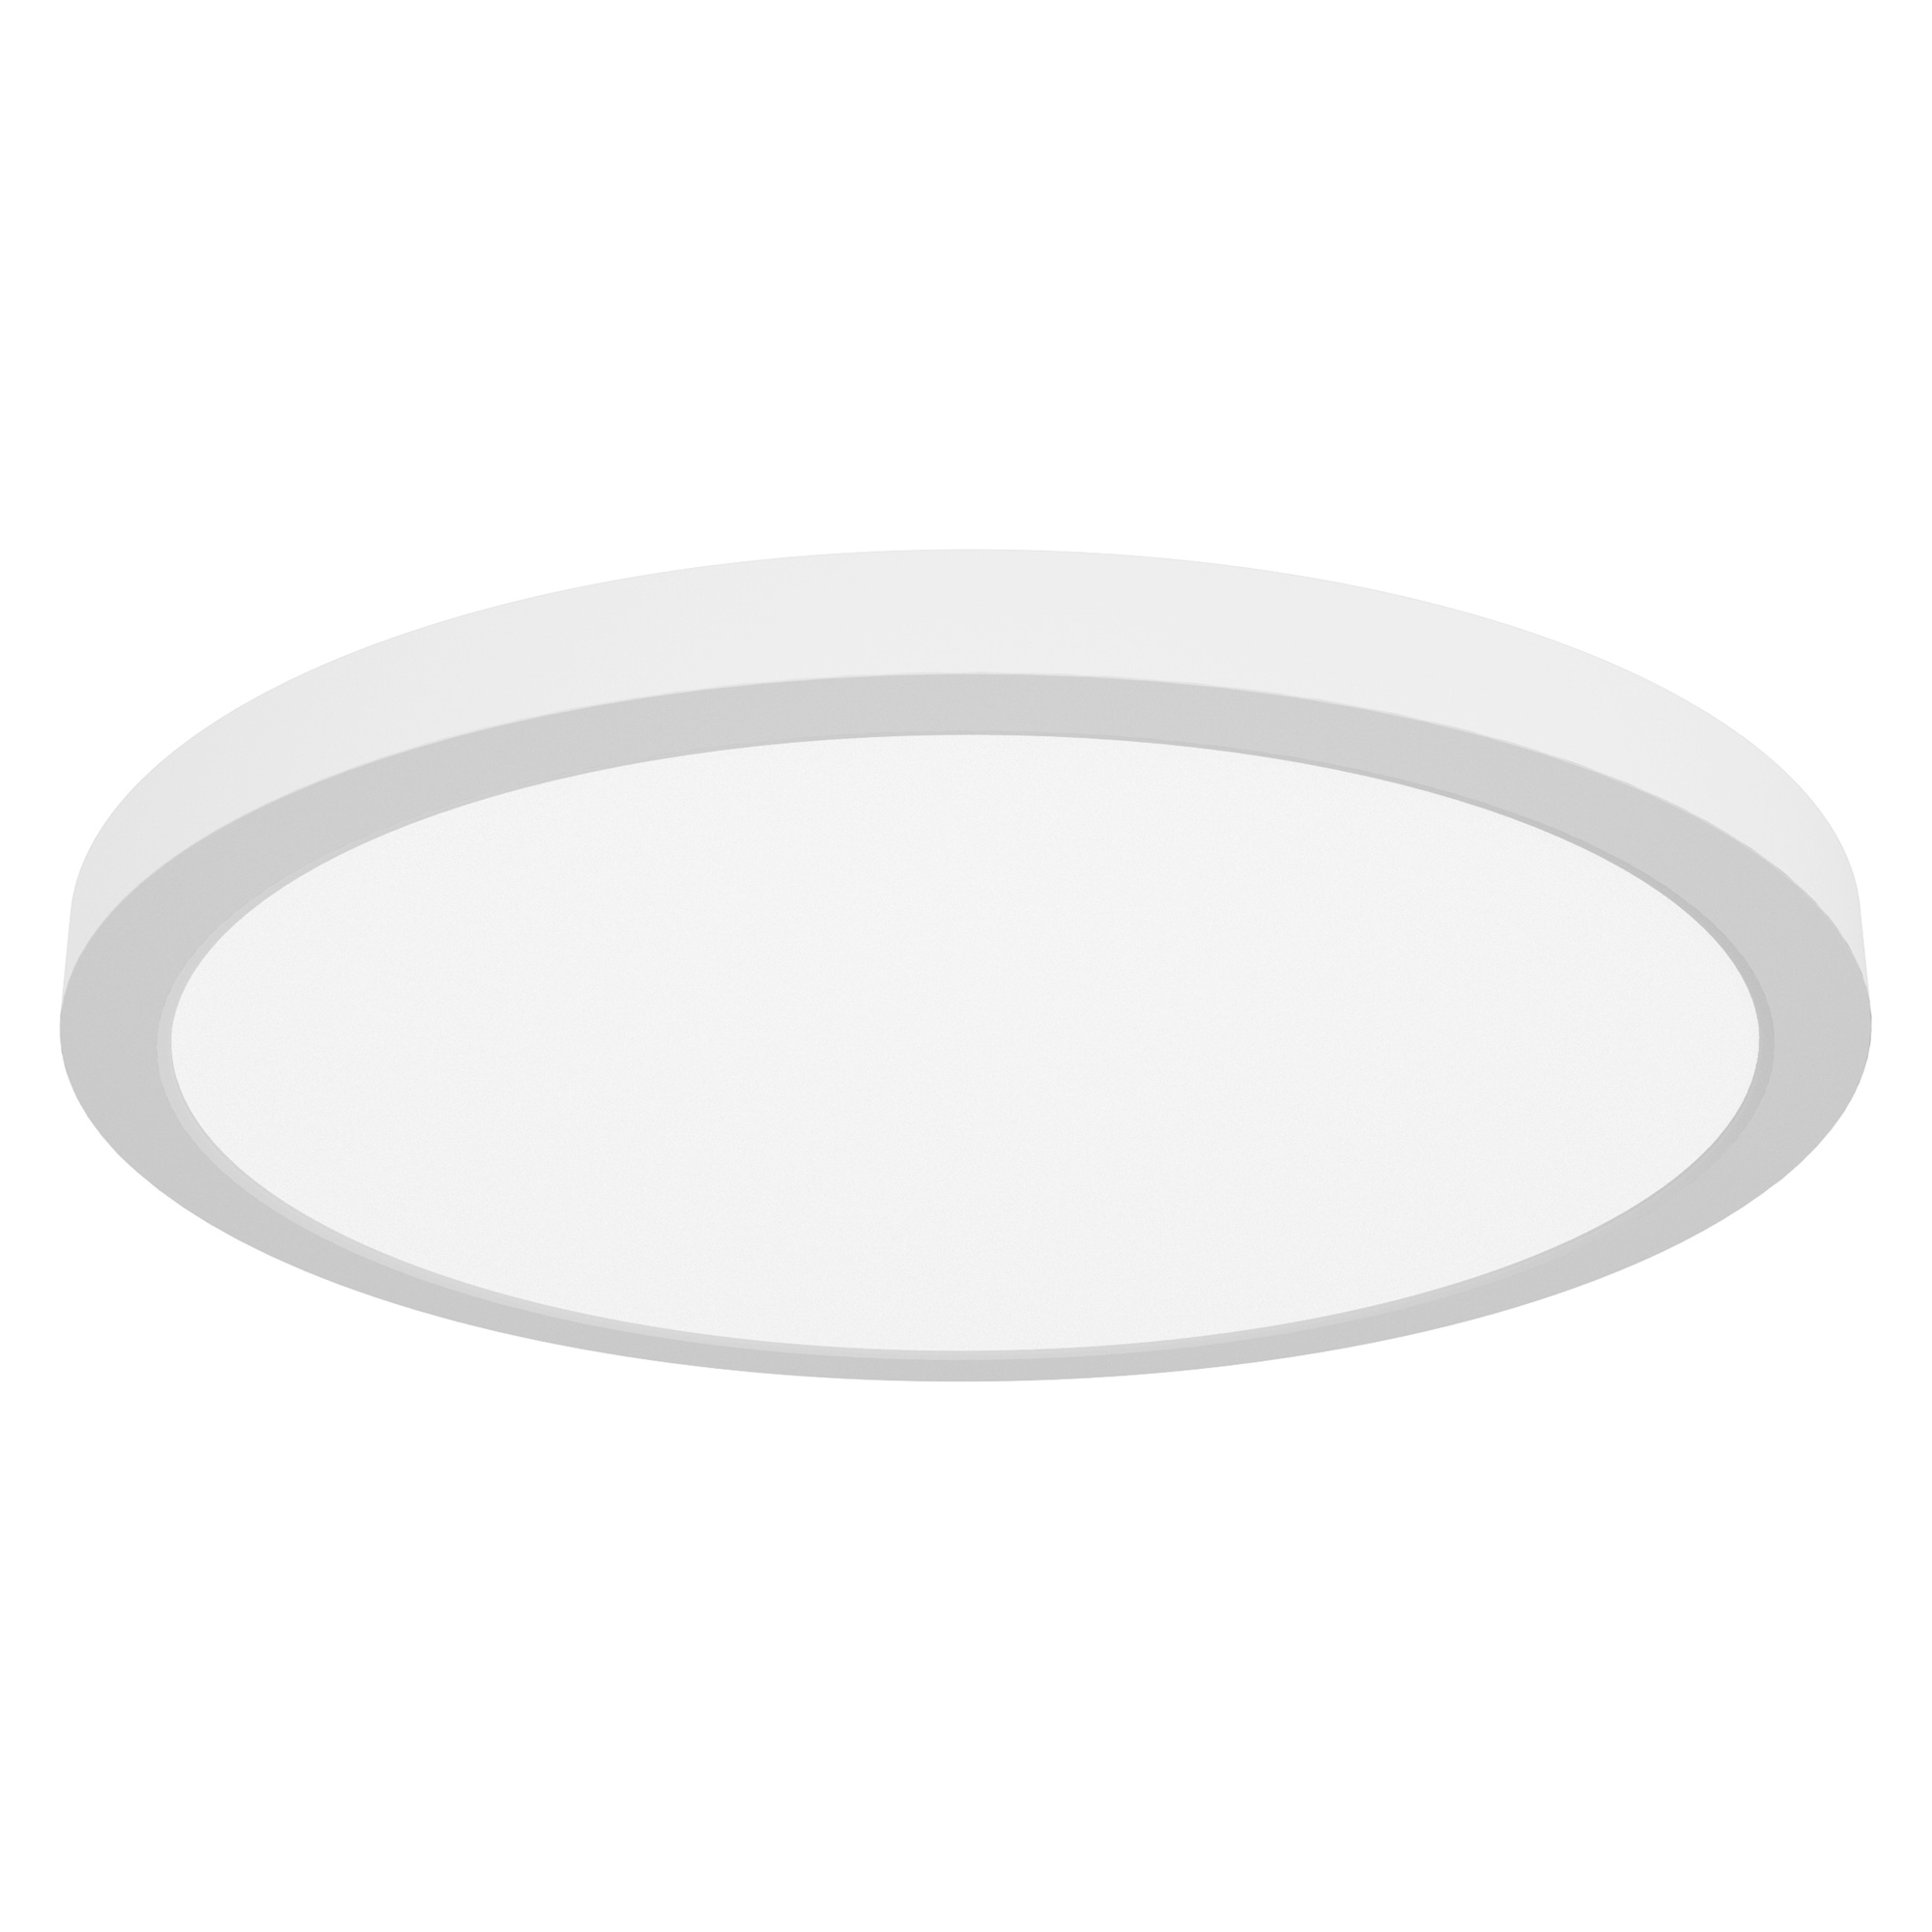 low priced 2ea0f 3032e Extra Large Round Ceiling Light Fixture by Access | 20848LEDD-WH/ACR